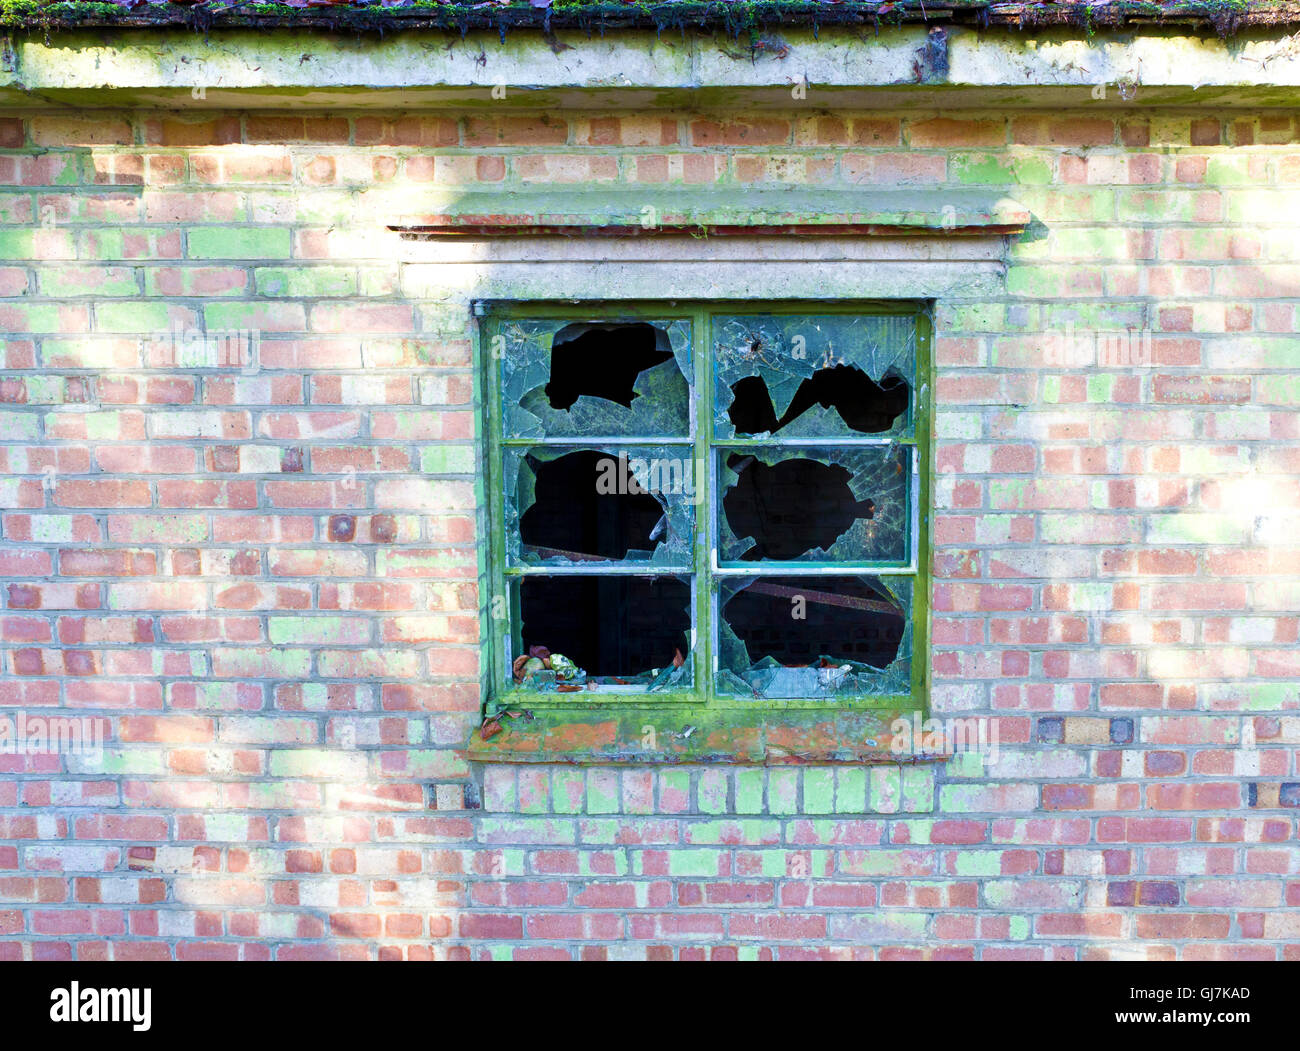 Smashed panes of glass in a window in a dilapidated old house - Stock Image